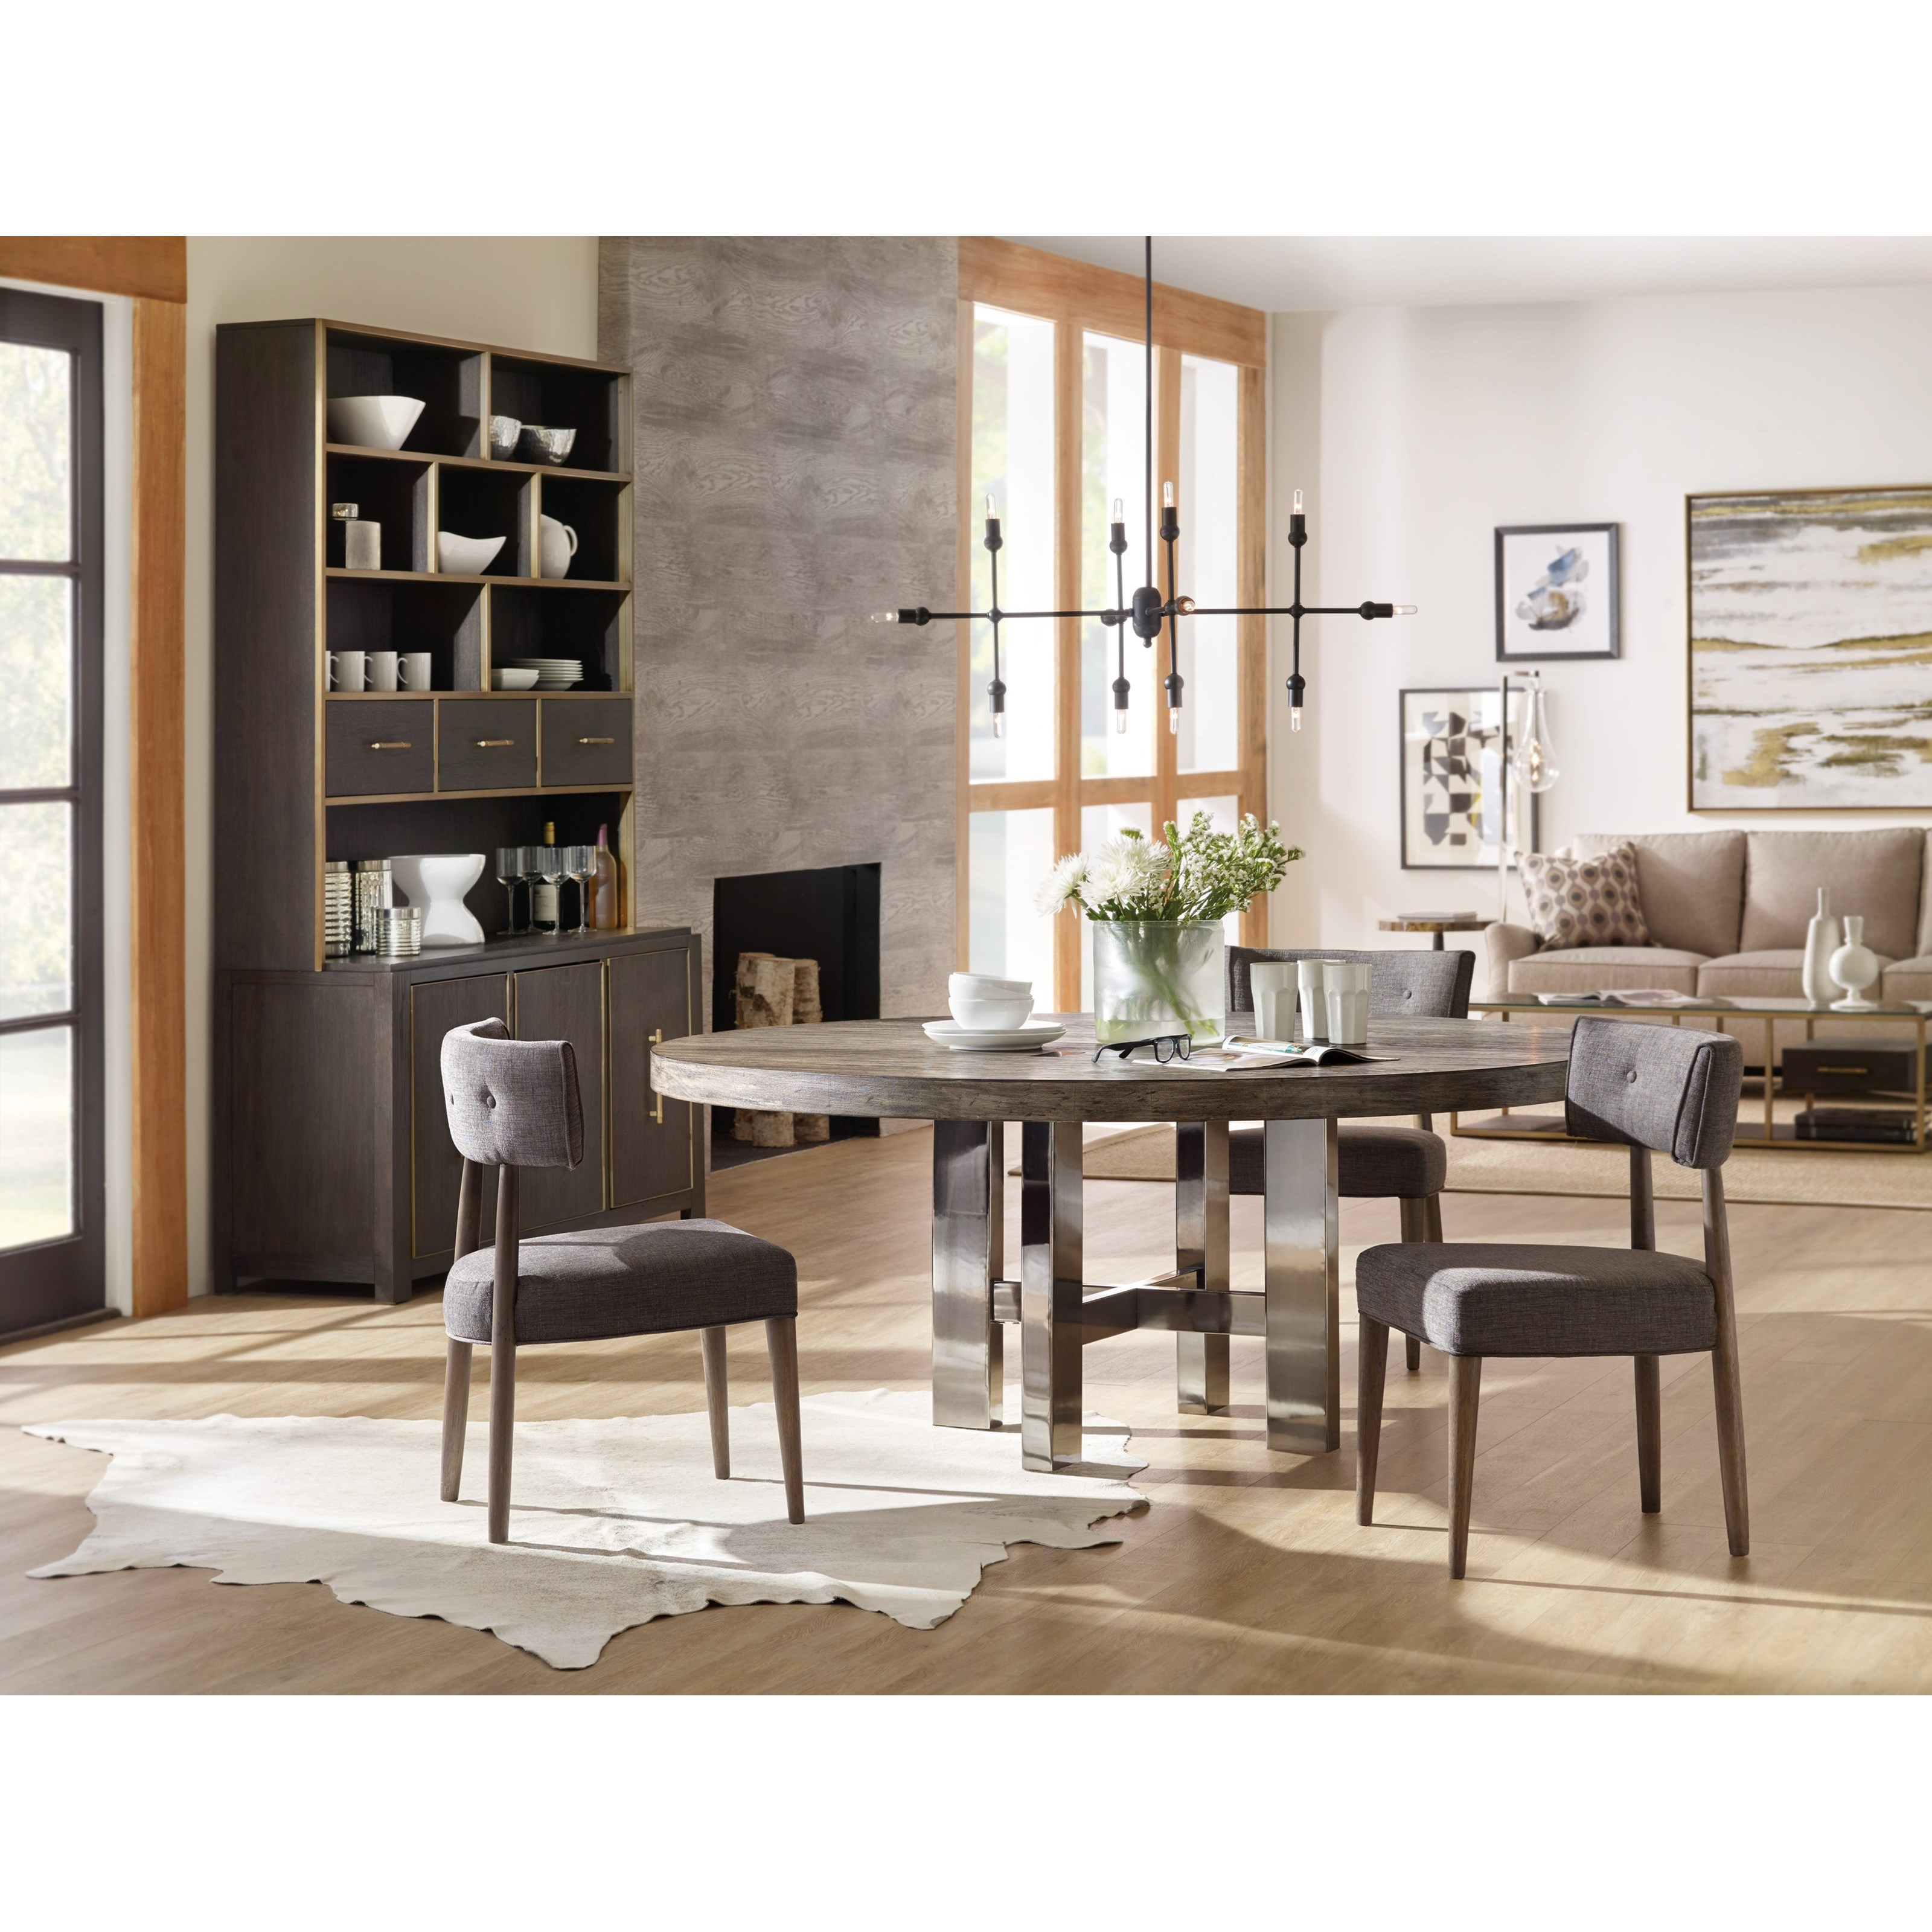 Huge Dining Room Tables: Hamilton Home Curata Large Modern Round Dining Table